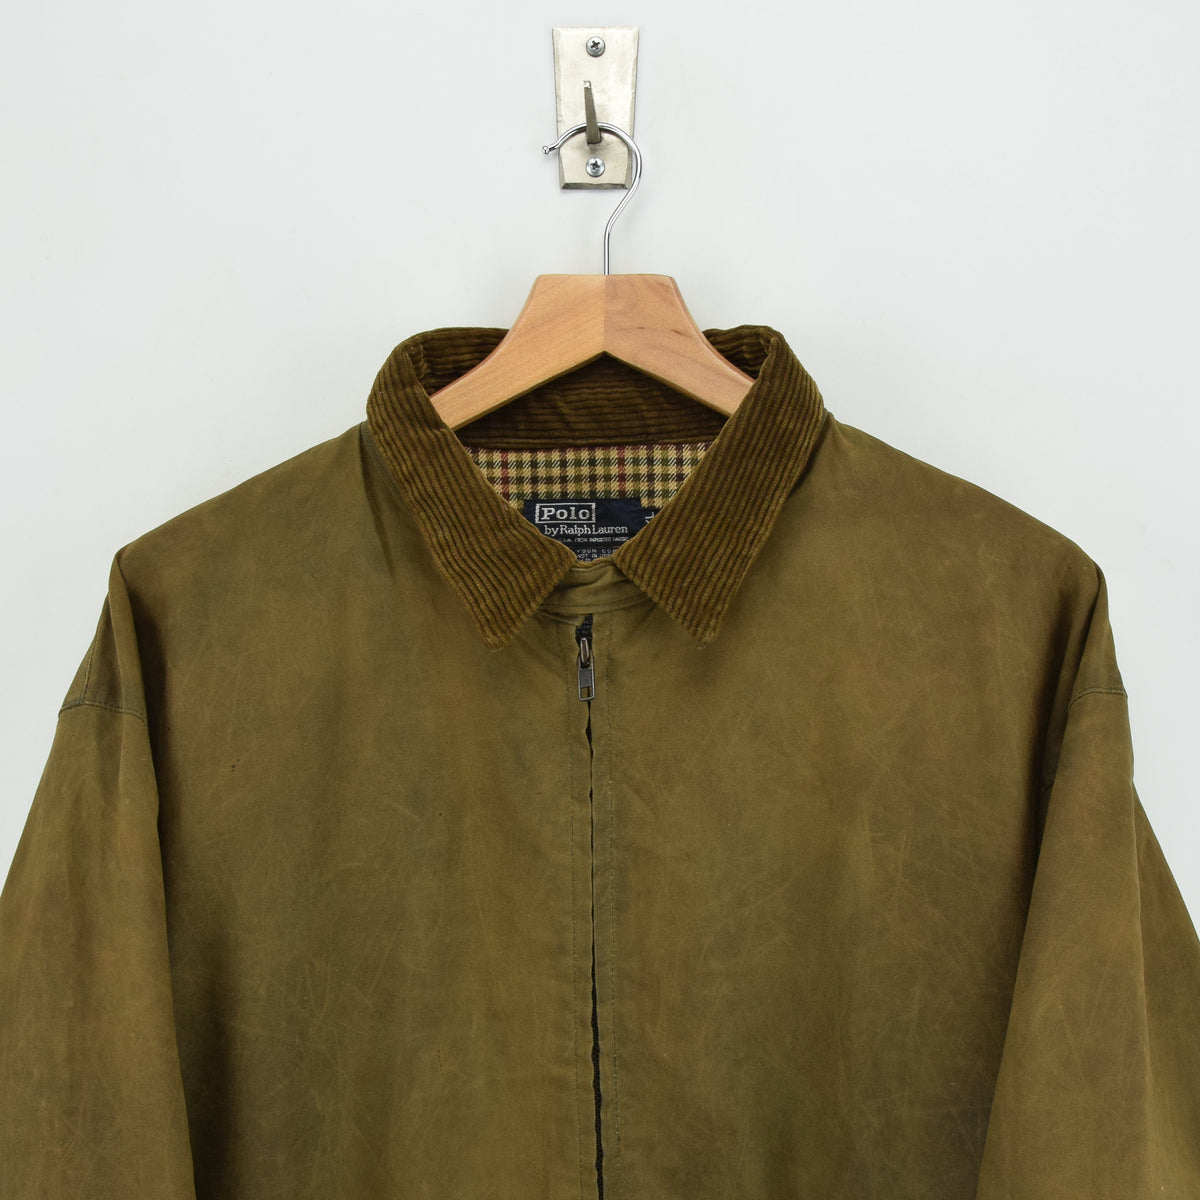 Ralph Lauren Polo Brown Bomber Harrington Waxed Cotton Jacket Made in USA XL chest